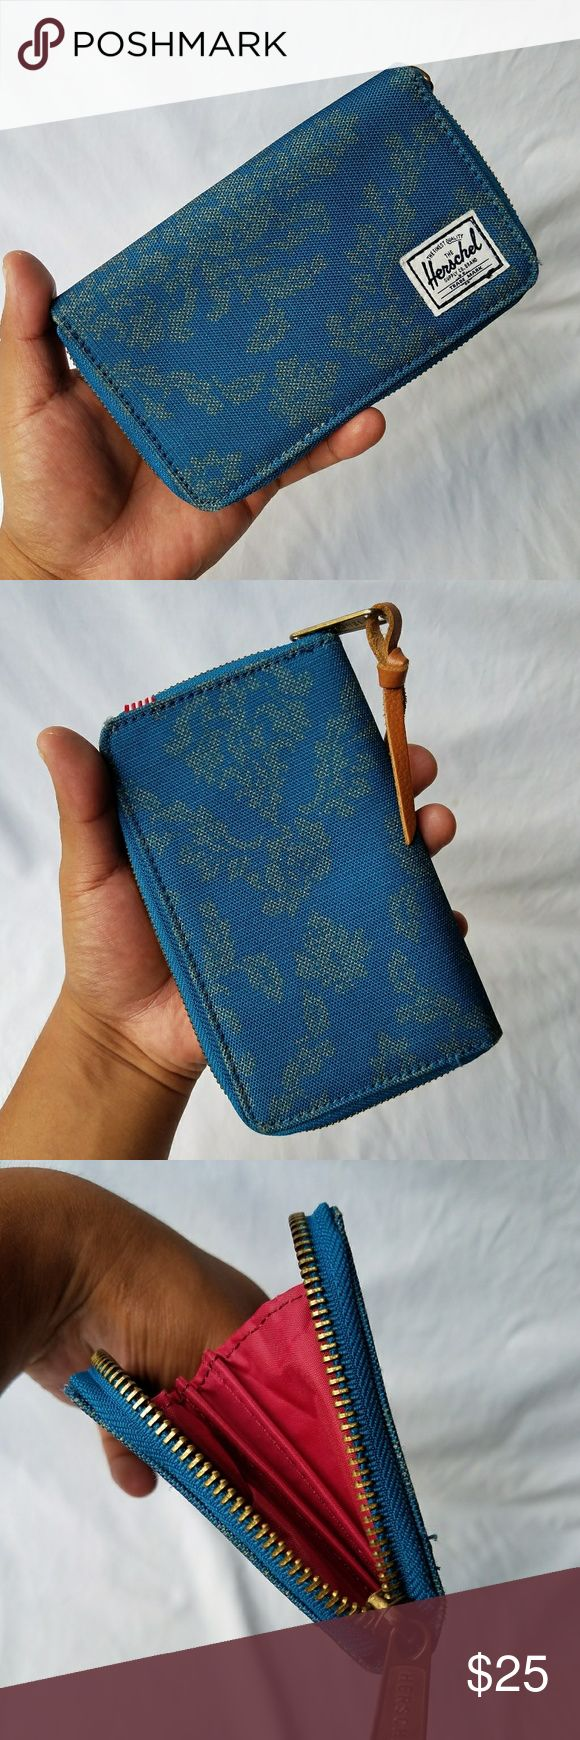 Herschel Floral Wallet 100% Authentic  Item has been used/Normal Wear  Comes as seen in pictures Herschel Supply Company Bags Wallets